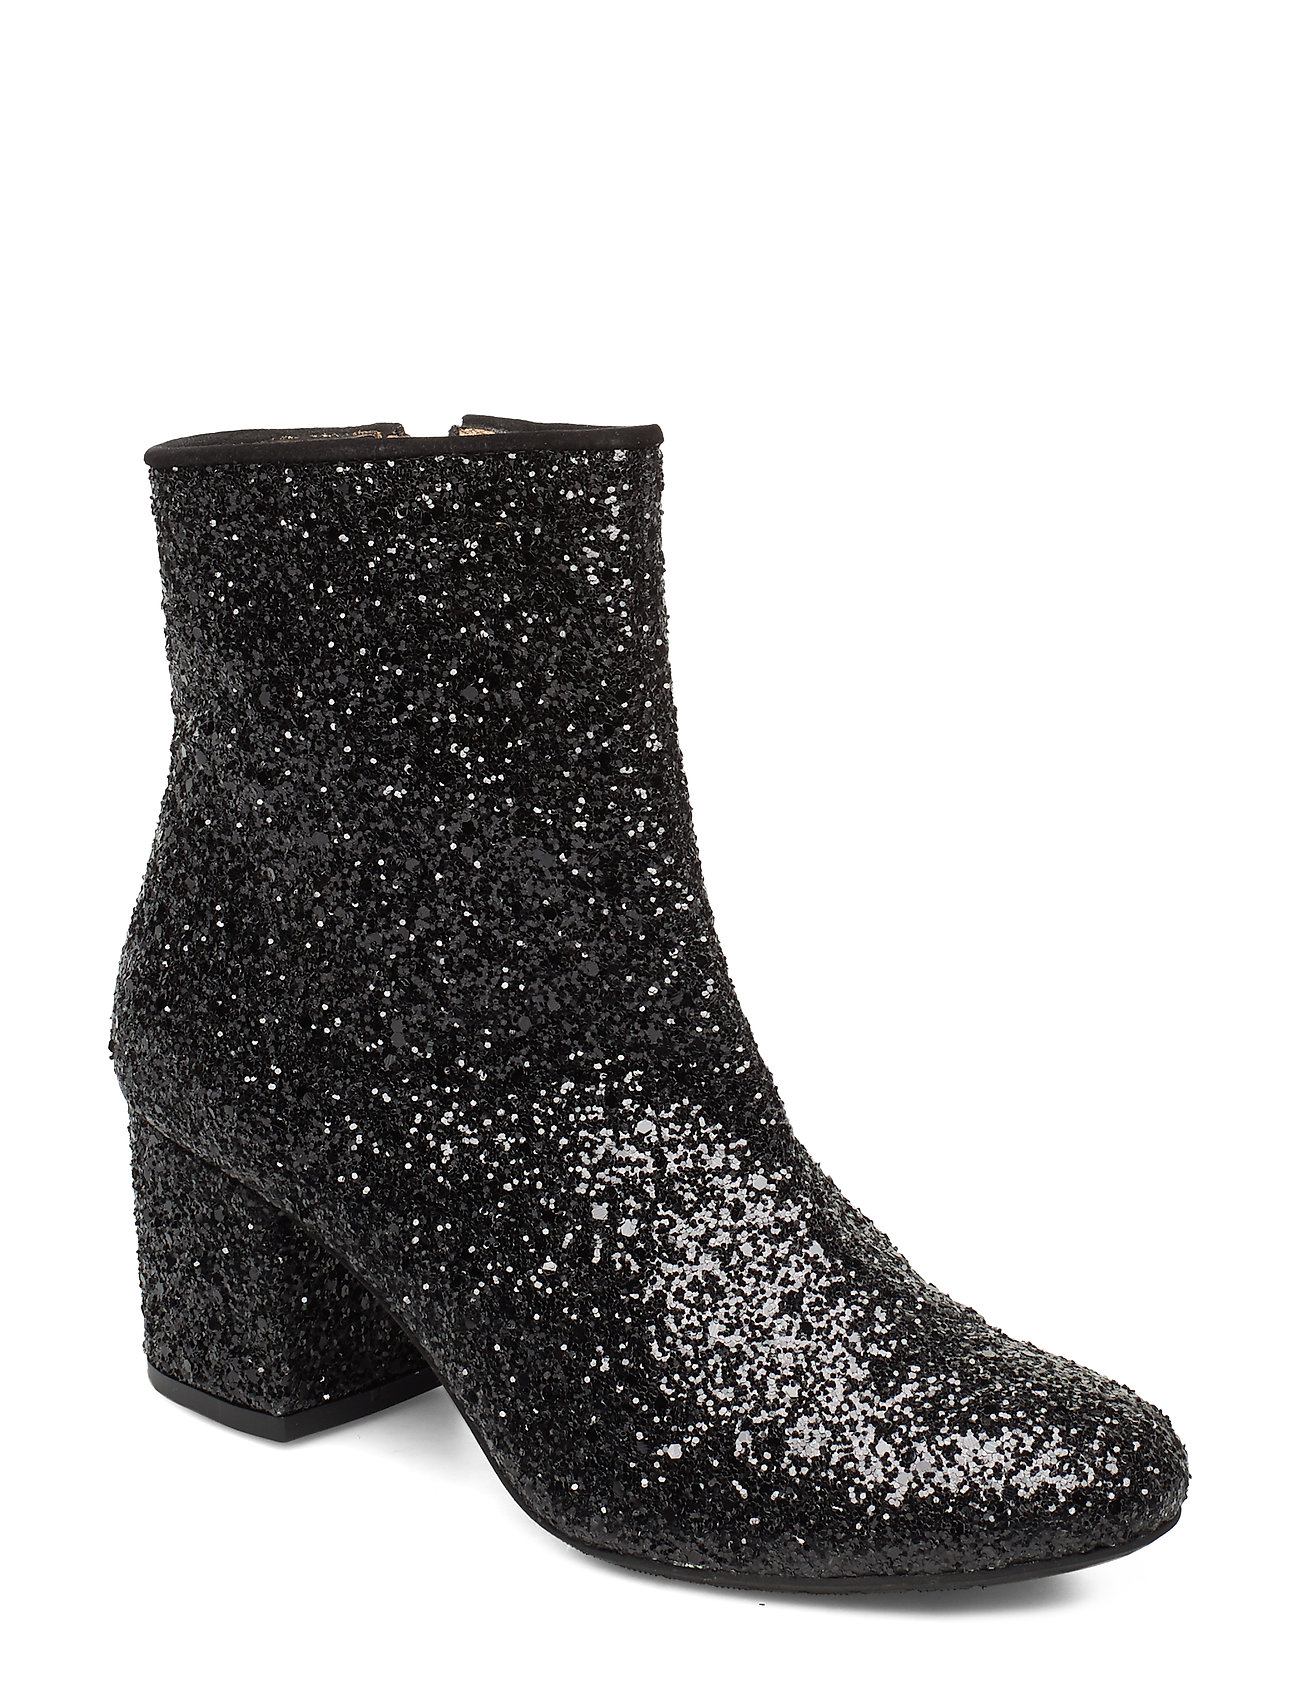 Image of Bootie - Block Heel - With Zippe Shoes Boots Ankle Boots Ankle Boot - Heel Sort ANGULUS (3406215931)